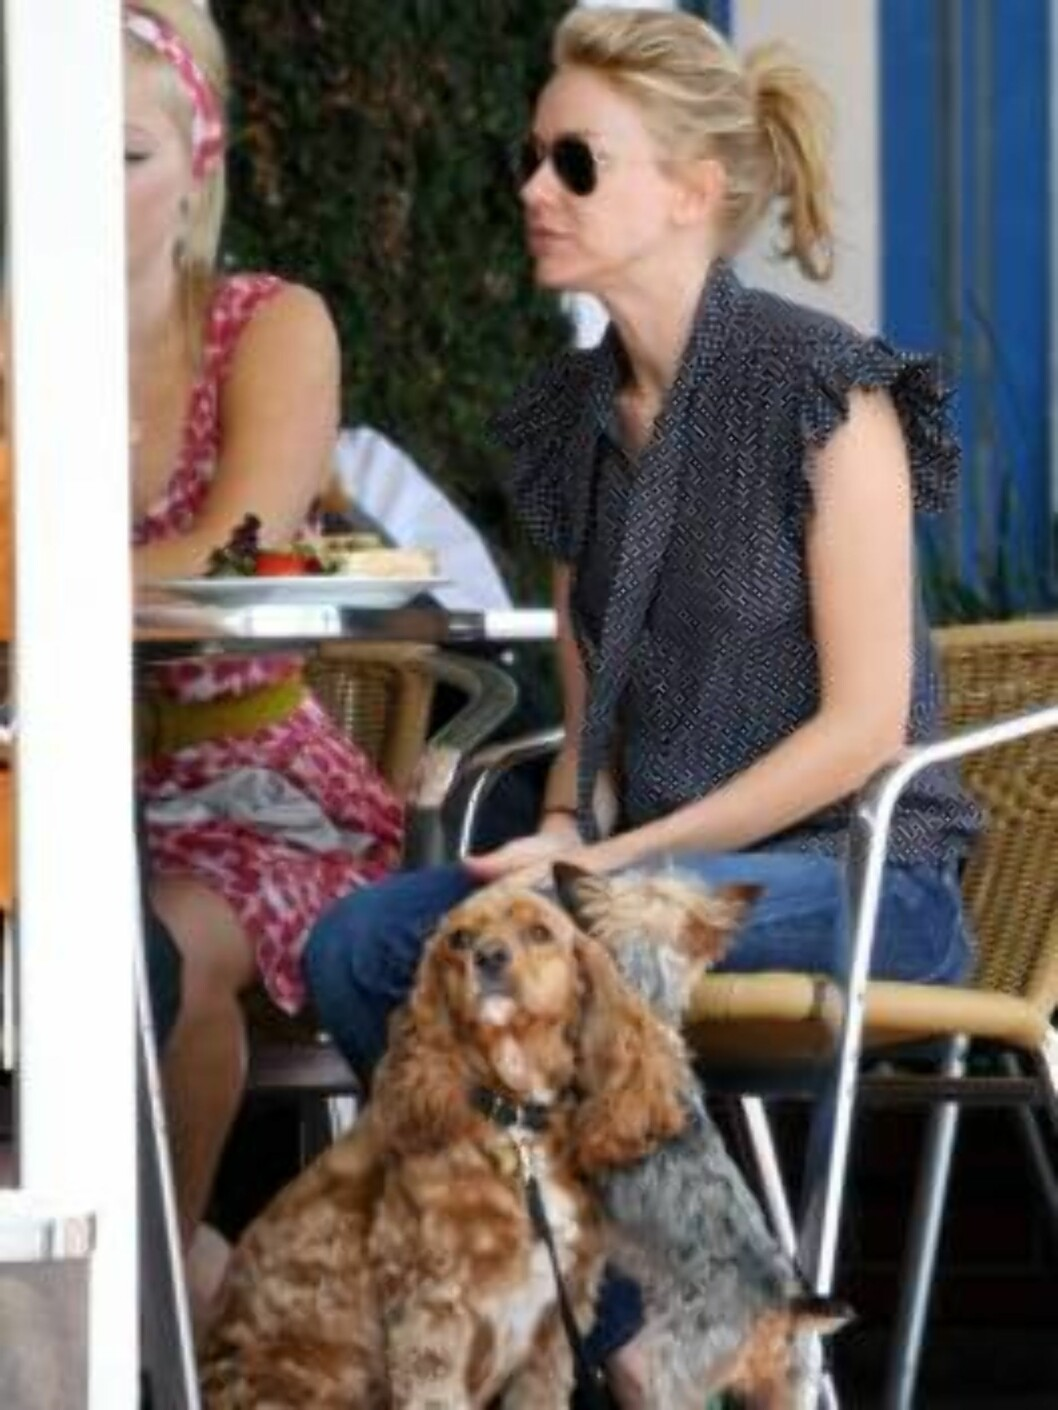 Naomie Watts going shopping with her dogs despite a sign forbiding pets _Fred Seagal and Maxfield_ June 12, 2006 X17agency exclusive Foto: All Over Press